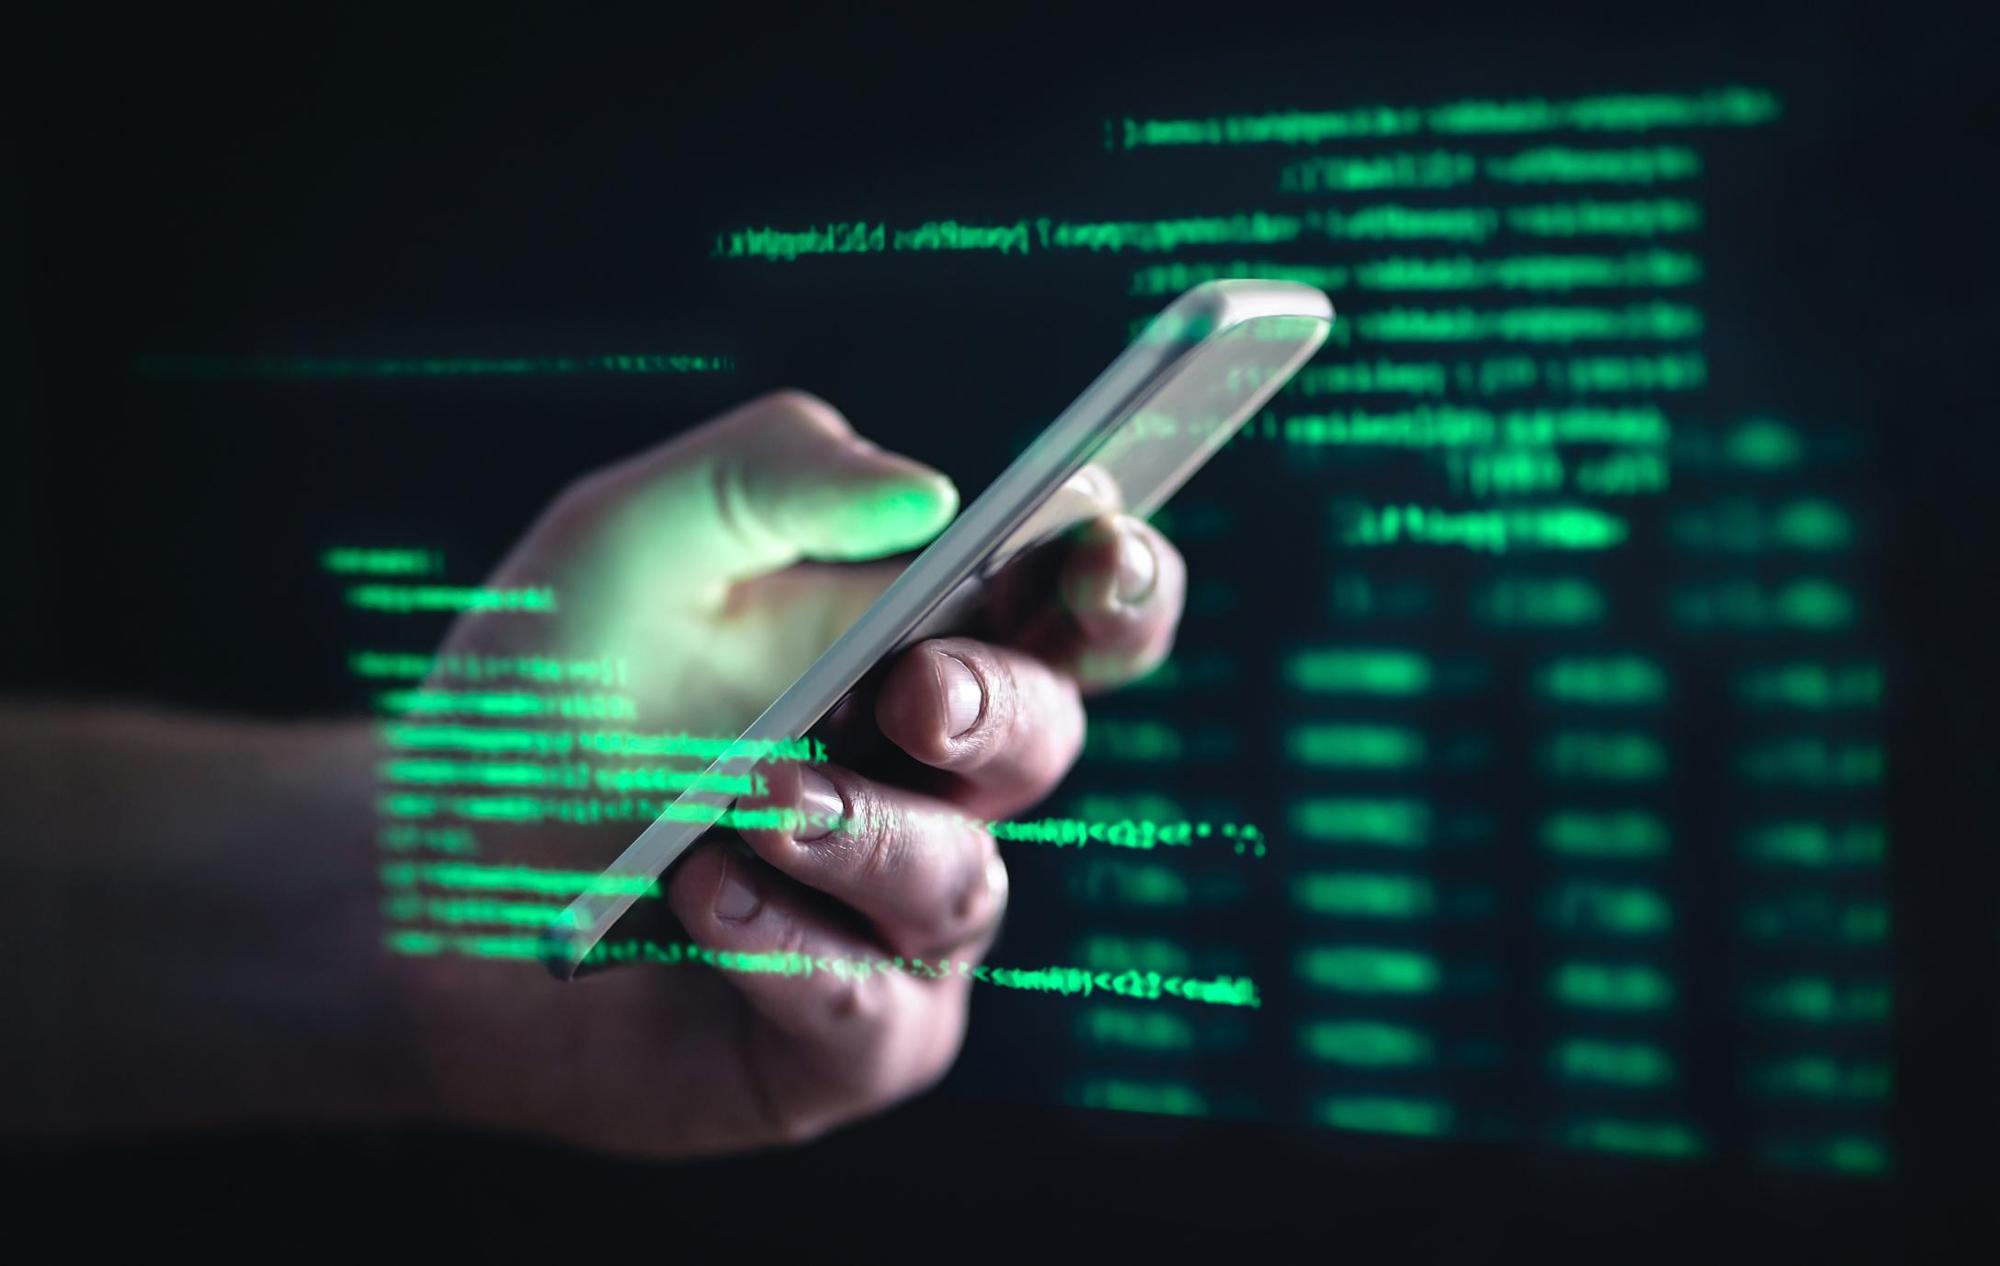 Axonius nabs $100M at a $1.2B valuation for its asset management cybersecurity platform